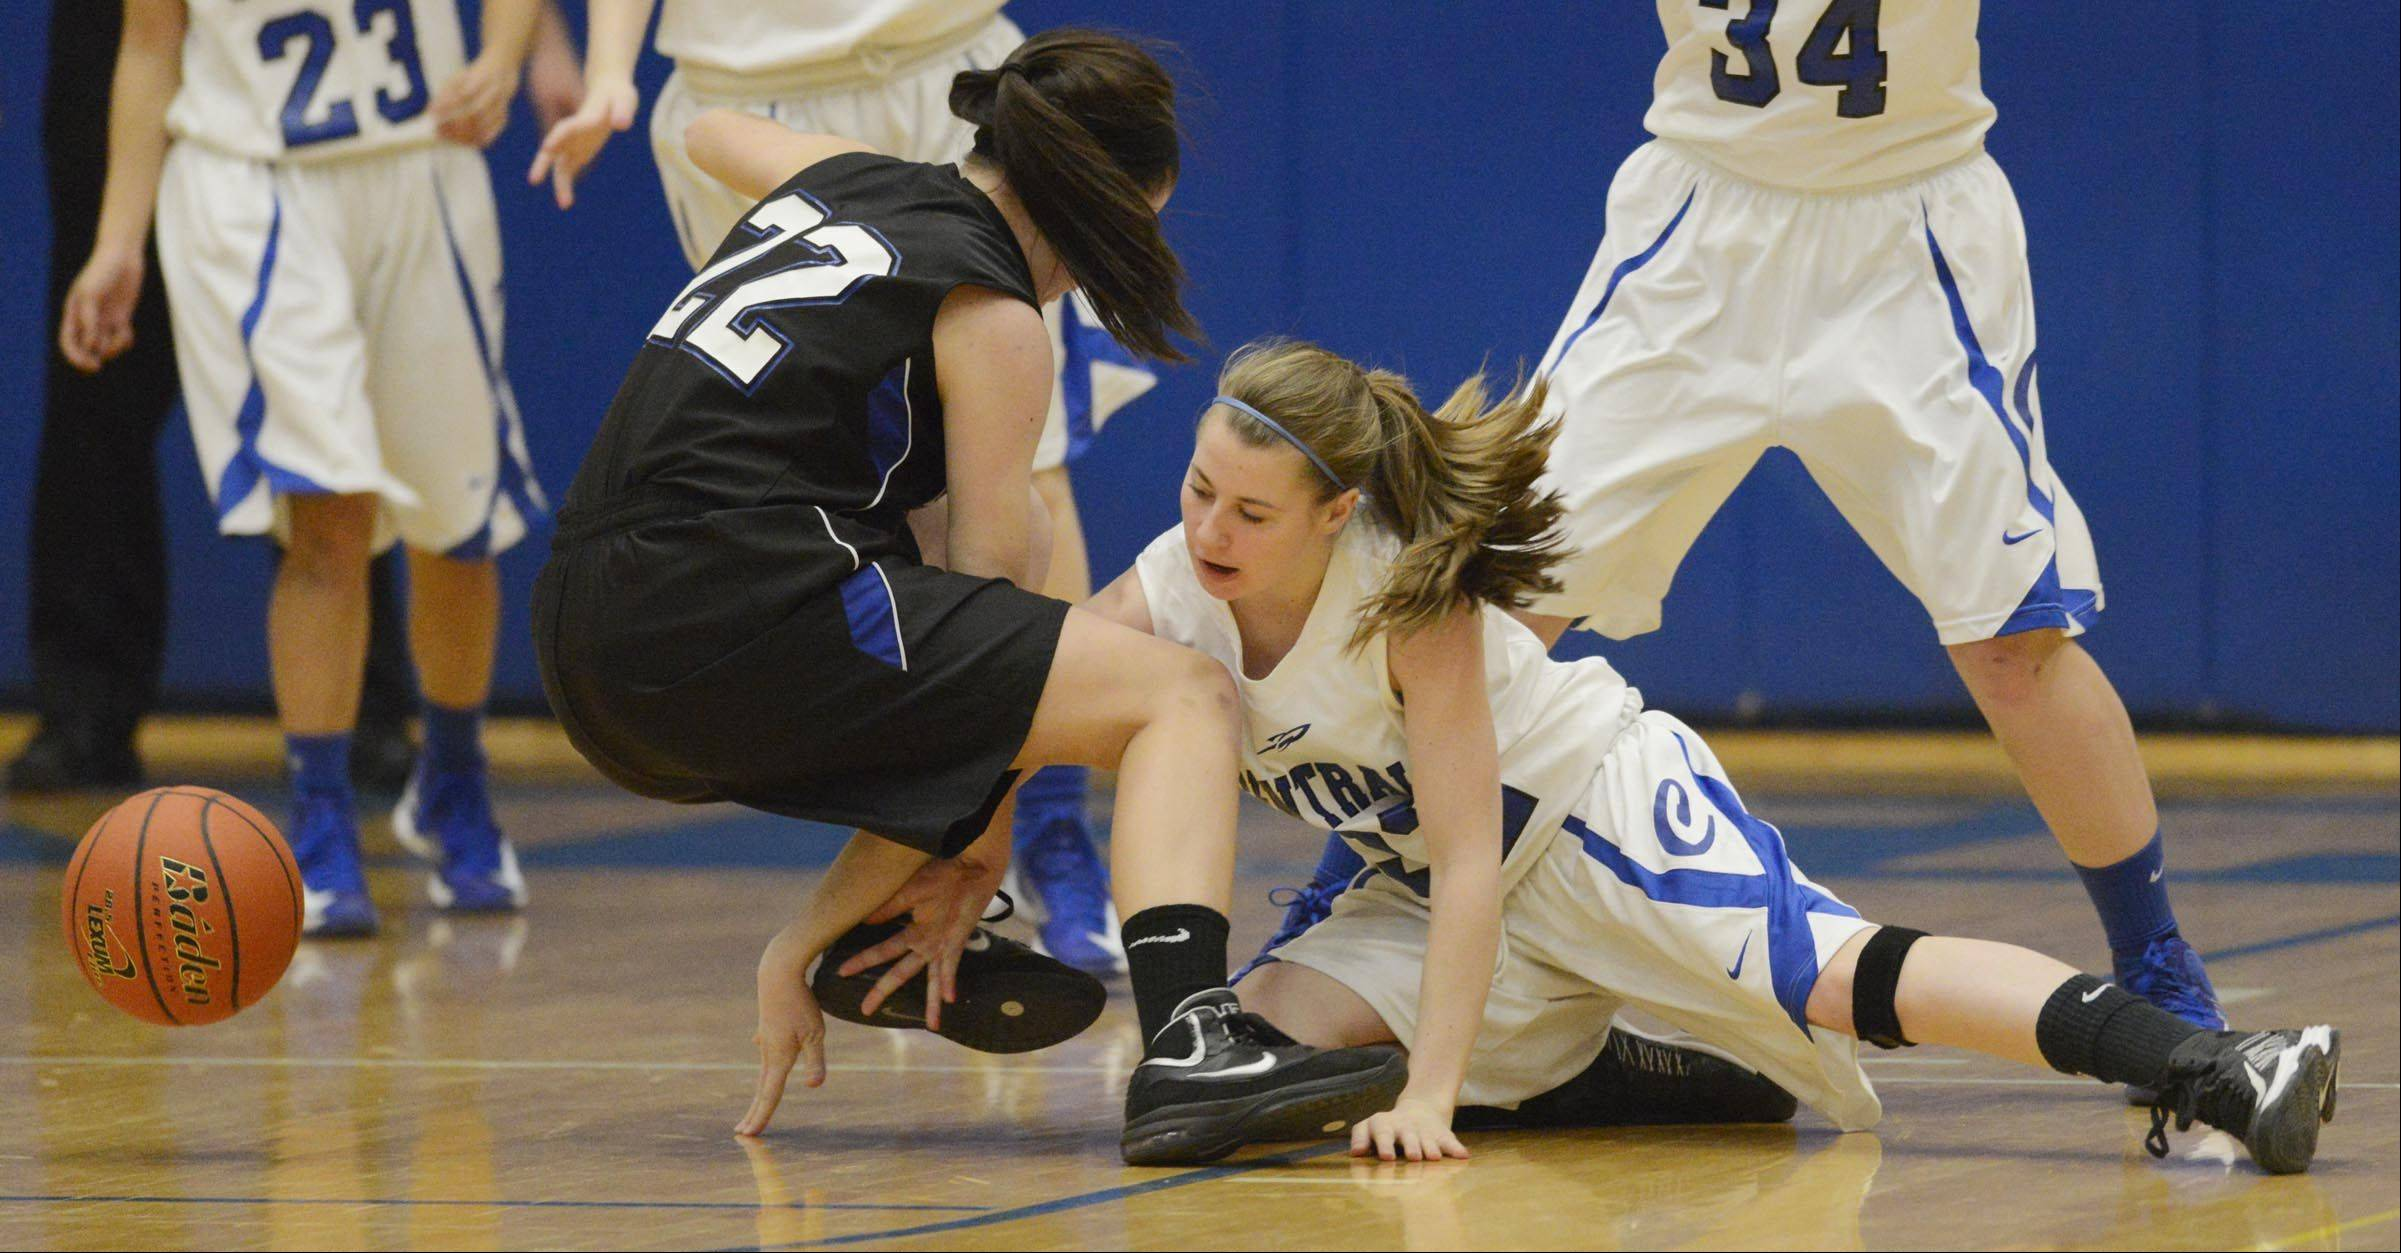 Burlington Central's Aly DeTamble punches the ball away from St. Charles North's Kayla Balousek Tuesday in Burlington.